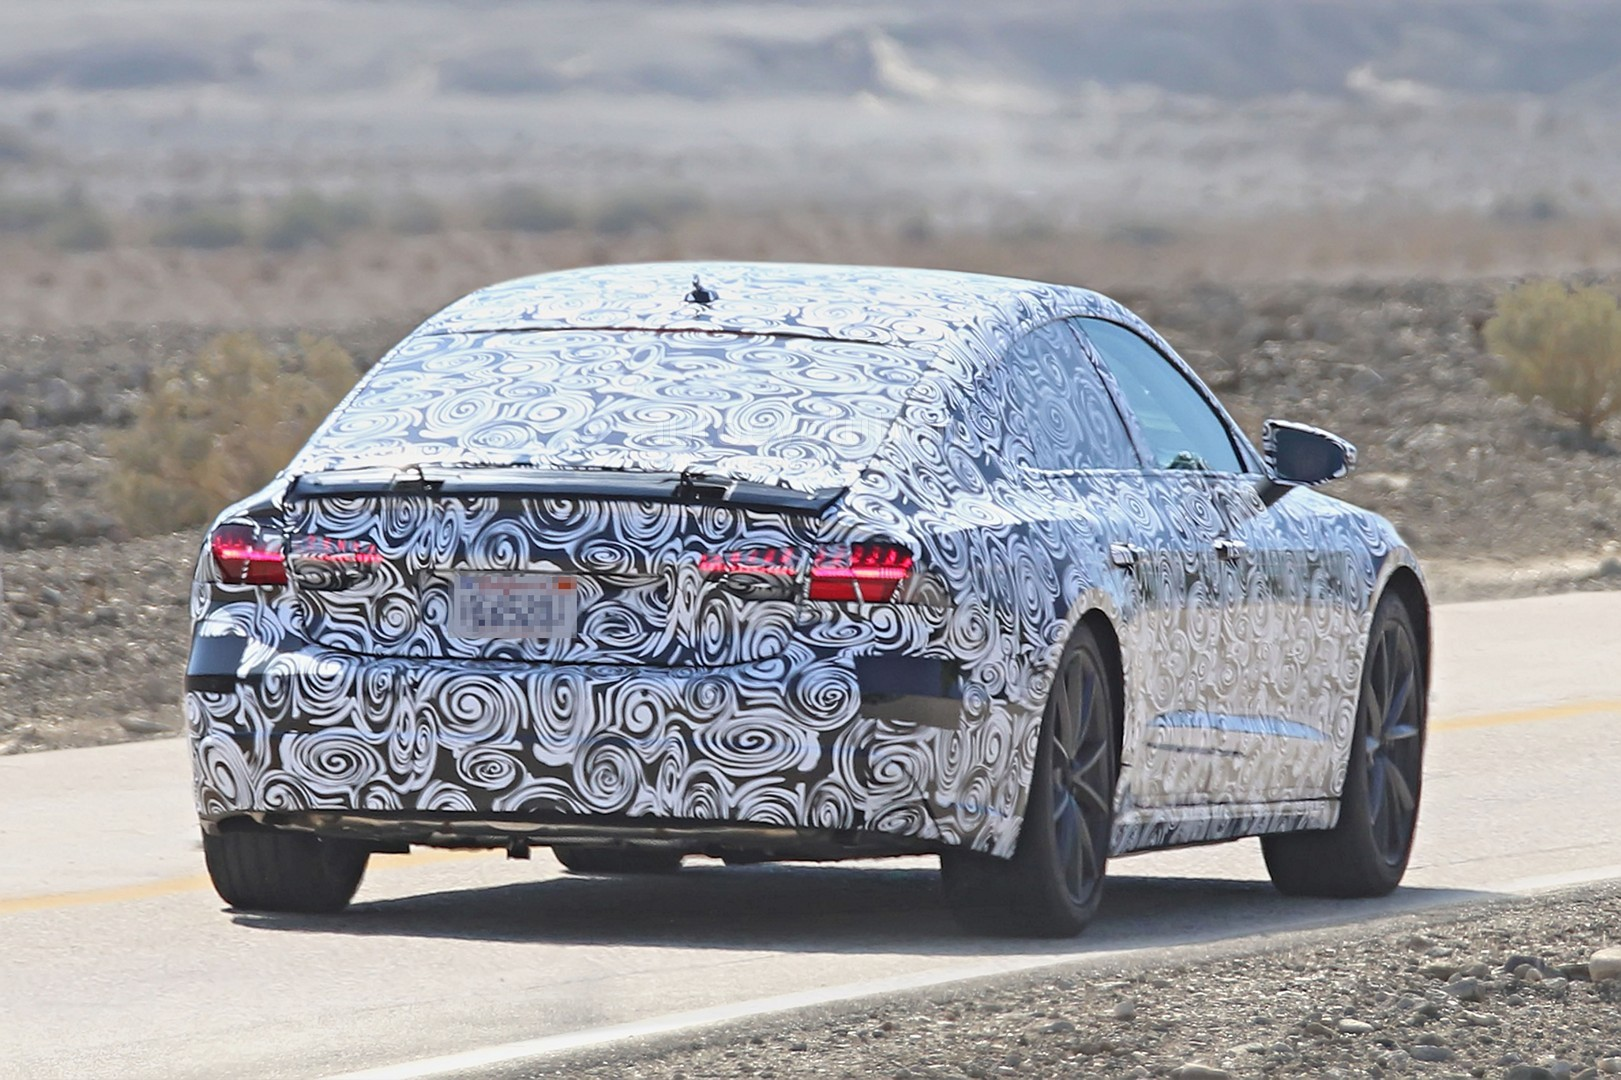 2018 audi electric car. contemporary electric 2018 audi a7 detailed spy photos reveal it could be electric or  hydrogenpowered for audi electric car